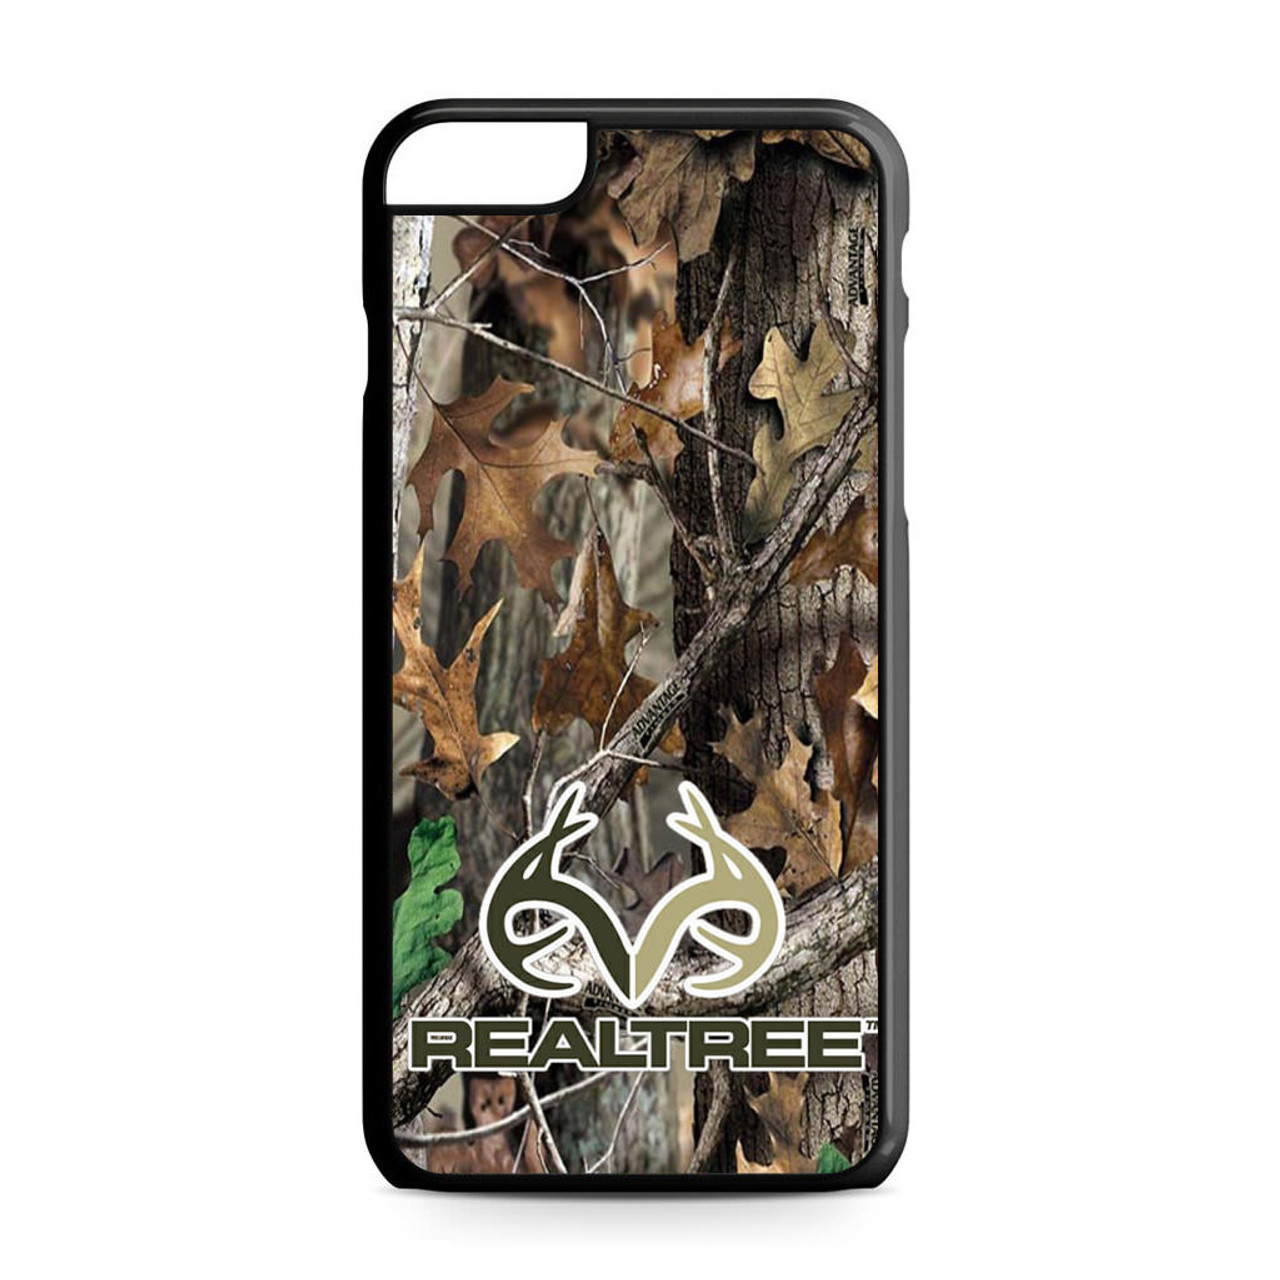 release date 28f24 3634f Realtree Ap Camo Hunting Outdoor iPhone 6 Plus/6S Plus Case